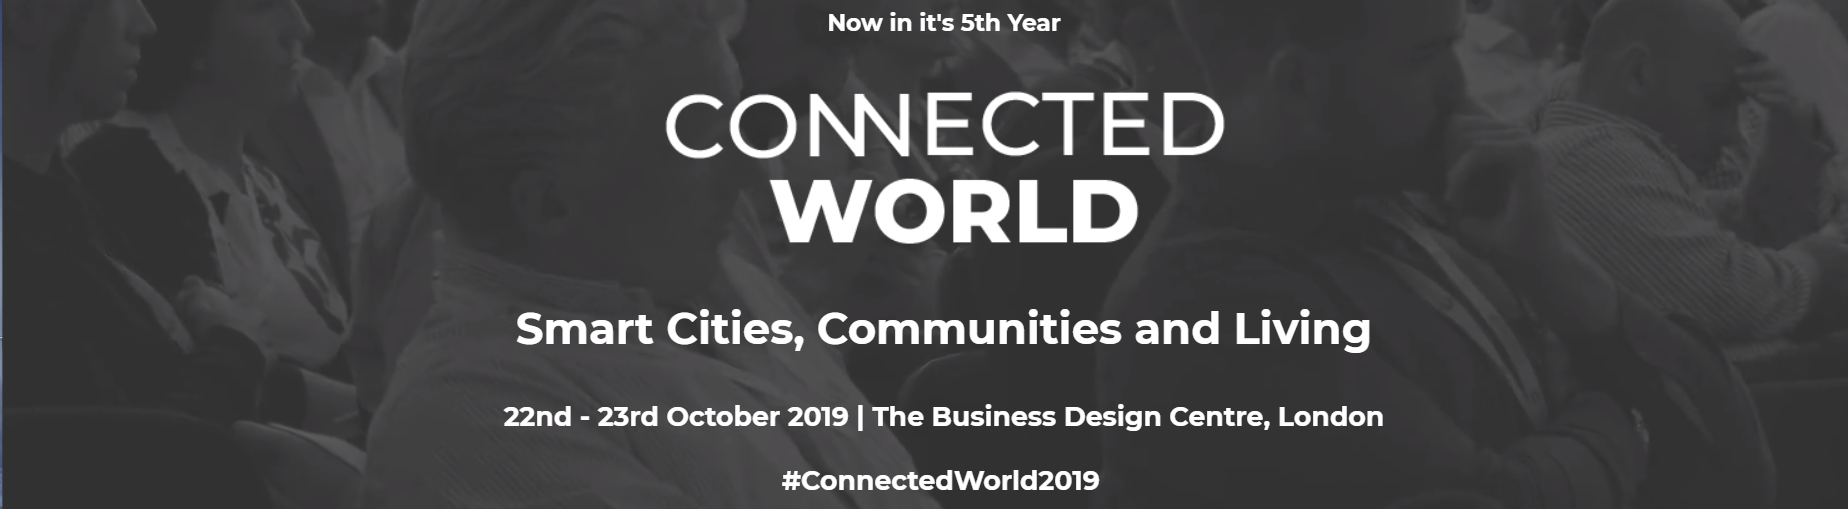 Connected World Summit